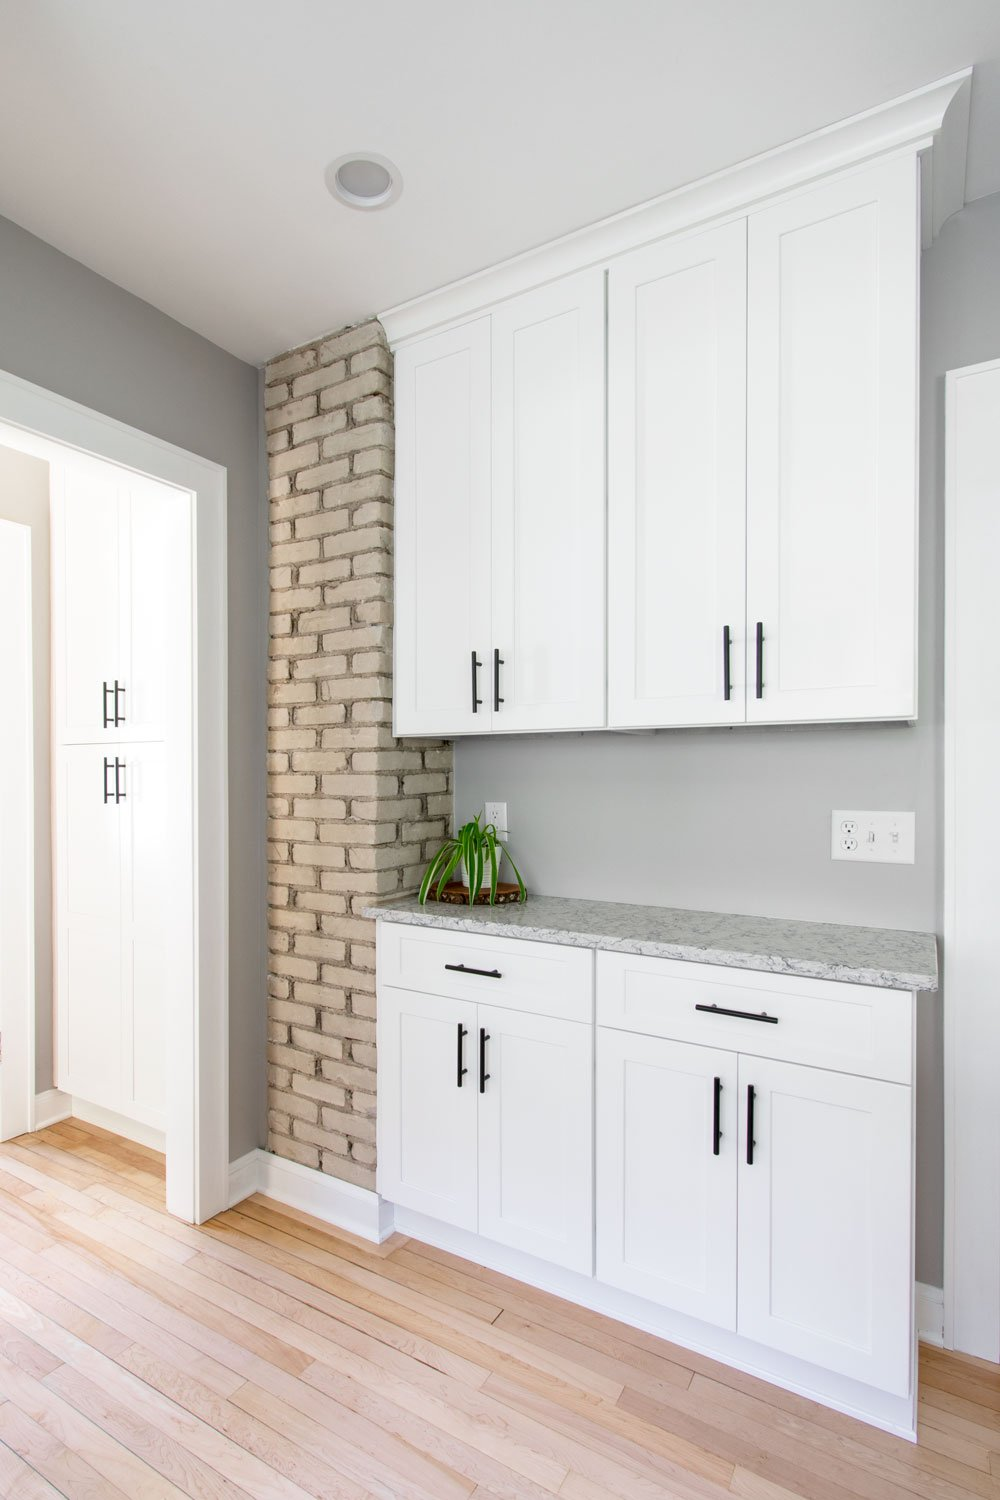 Brick wall and white cabinets